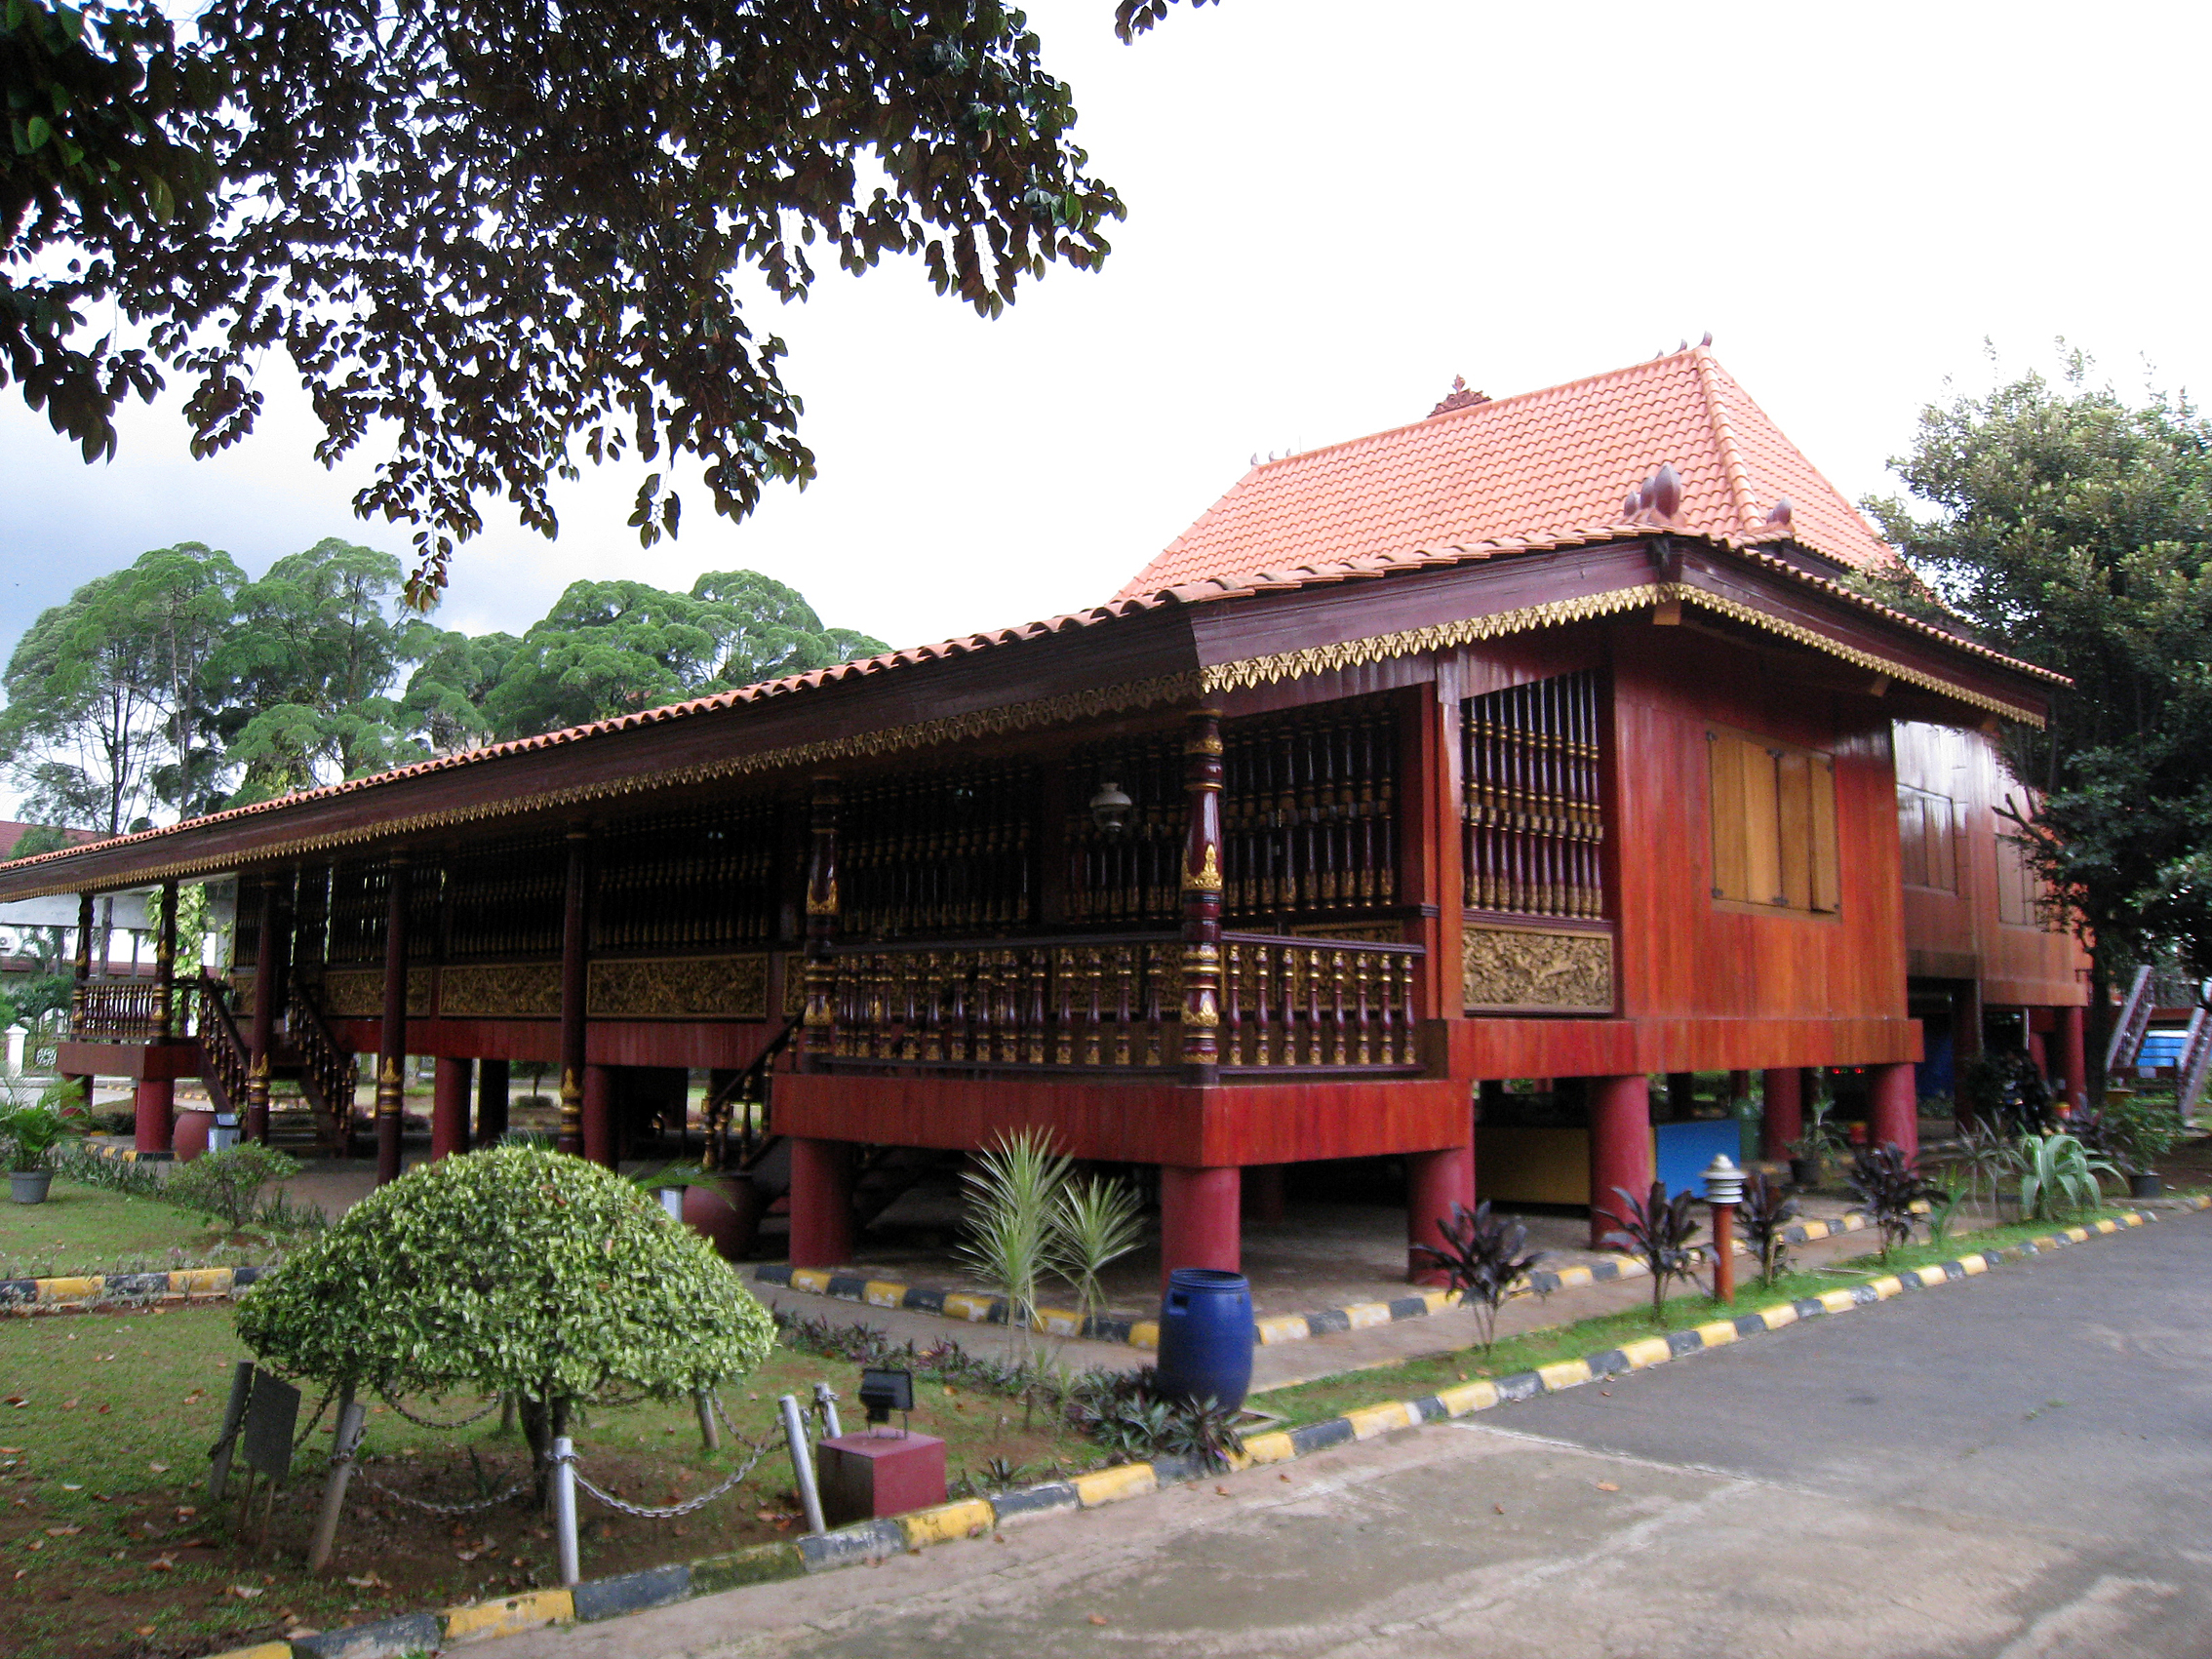 File Tmii South Sumatra Pavilion Limas House Jpg Wikimedia Commons